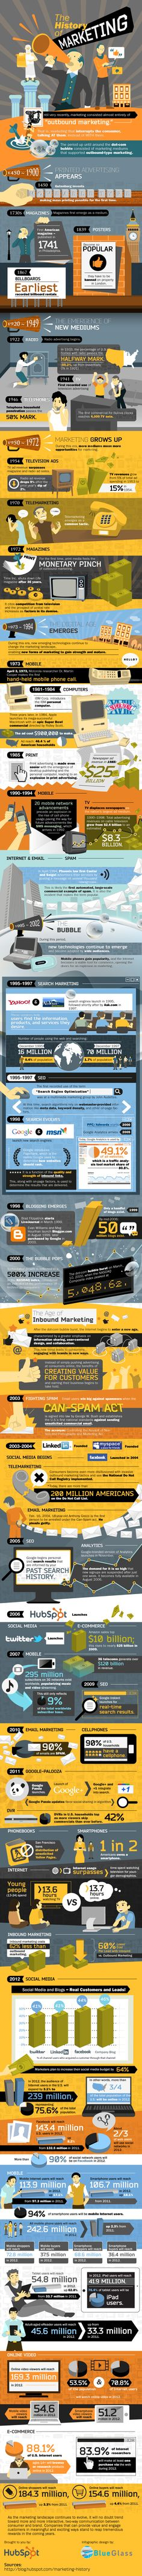 The history of market #in g